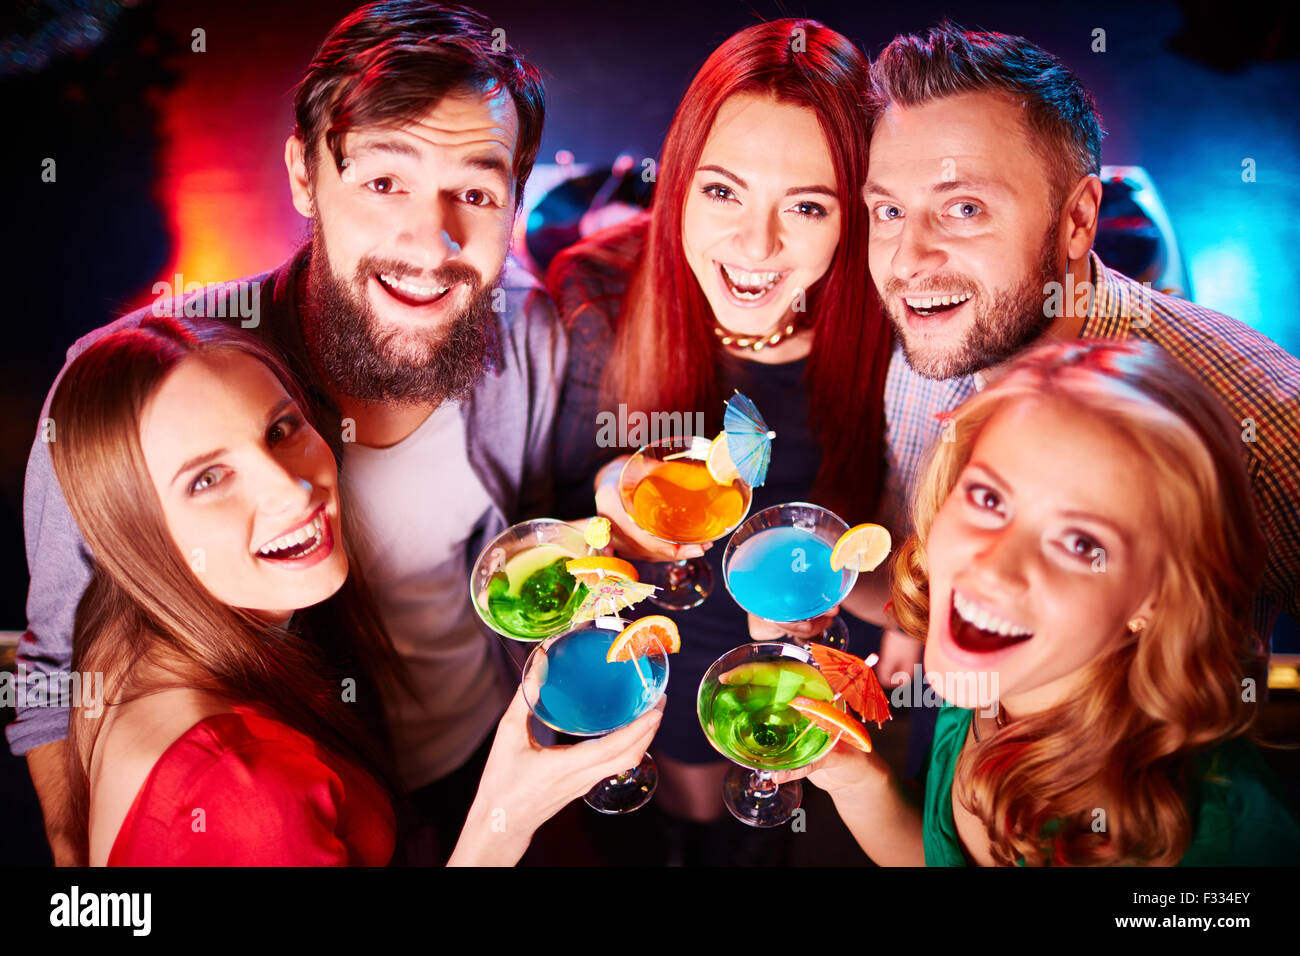 Ecstatic guys and girls toasting at party and looking at camera - Stock Image